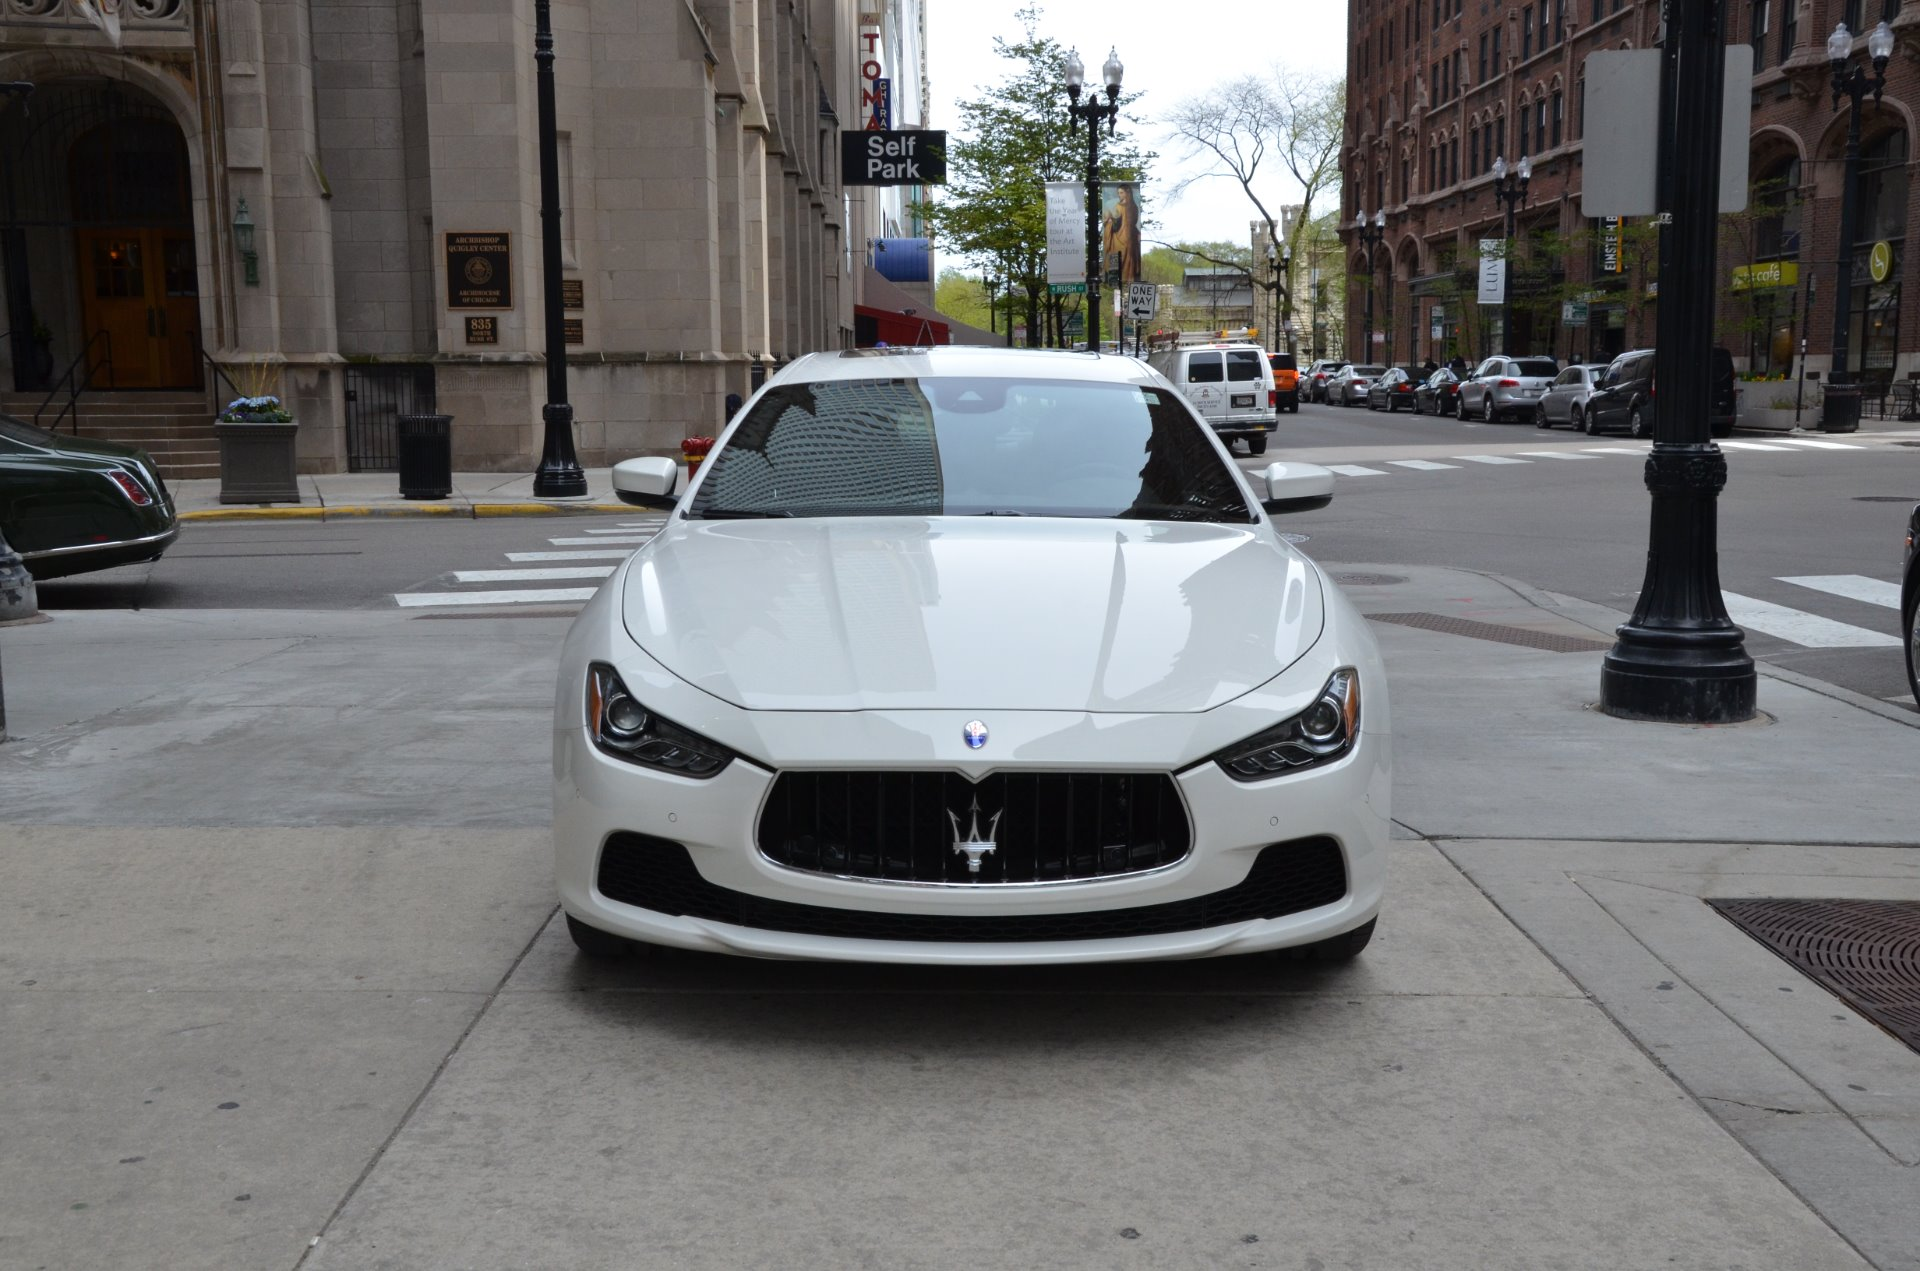 2017 Maserati Ghibli SQ4 S Q4 Stock # M600 for sale near ...